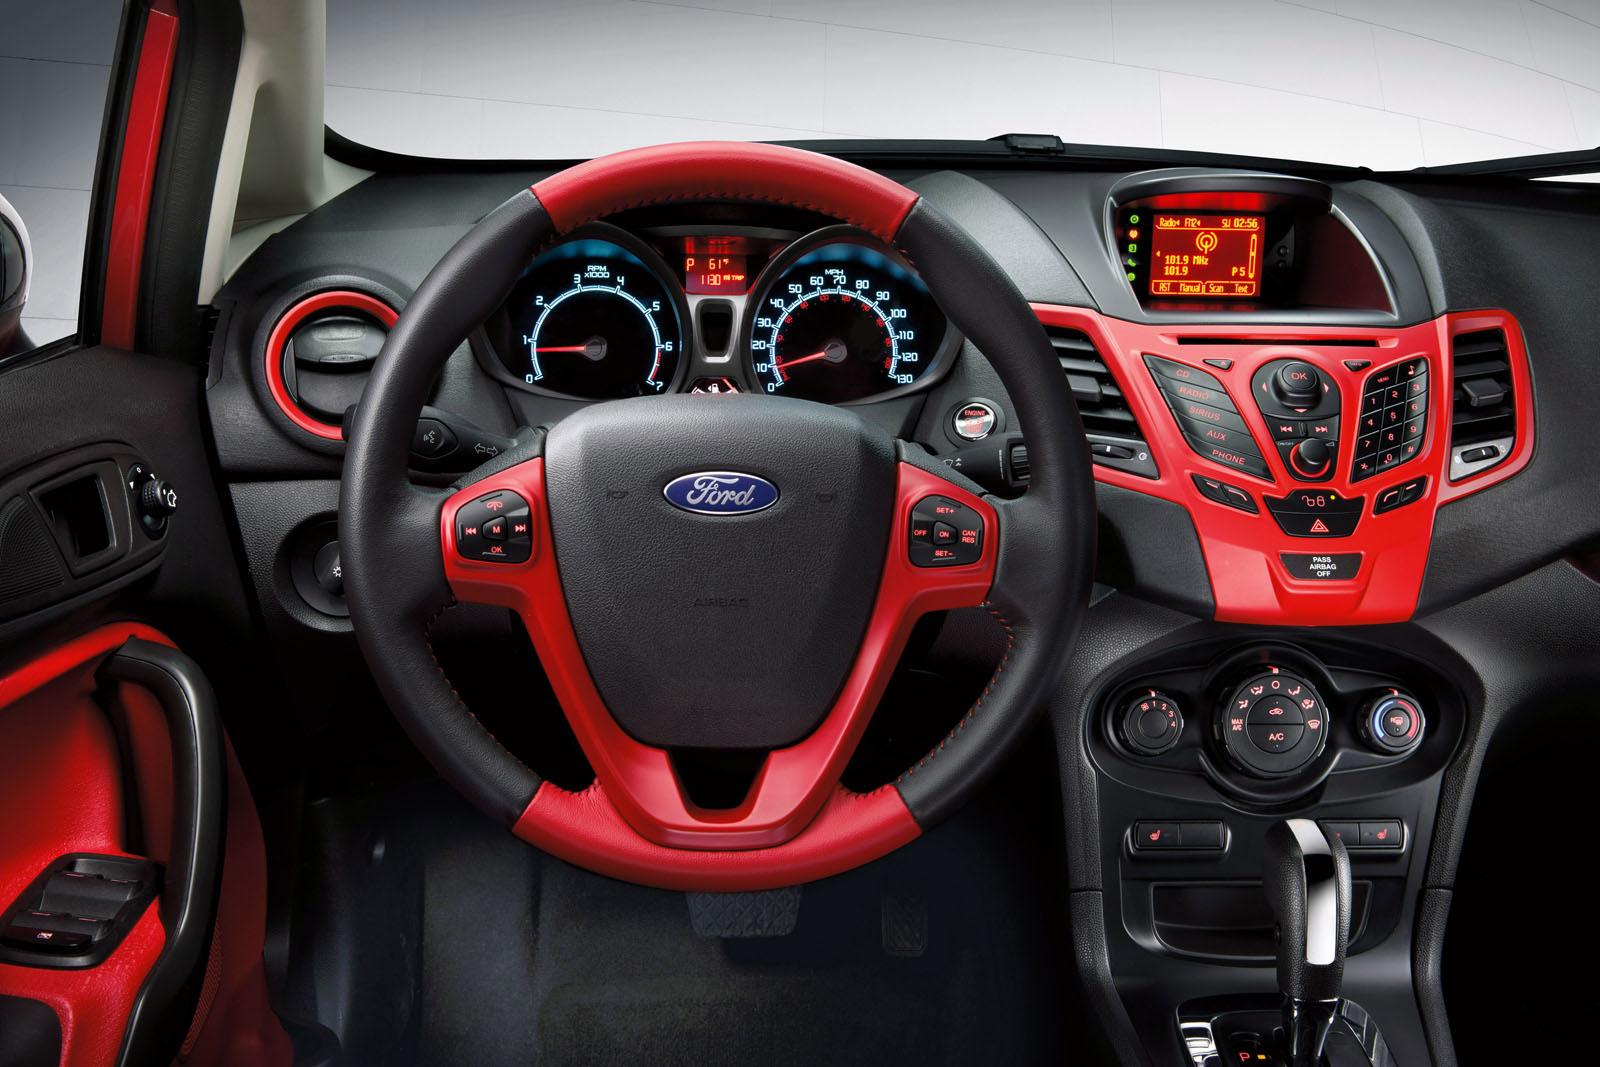 2012 ford fiesta image 21